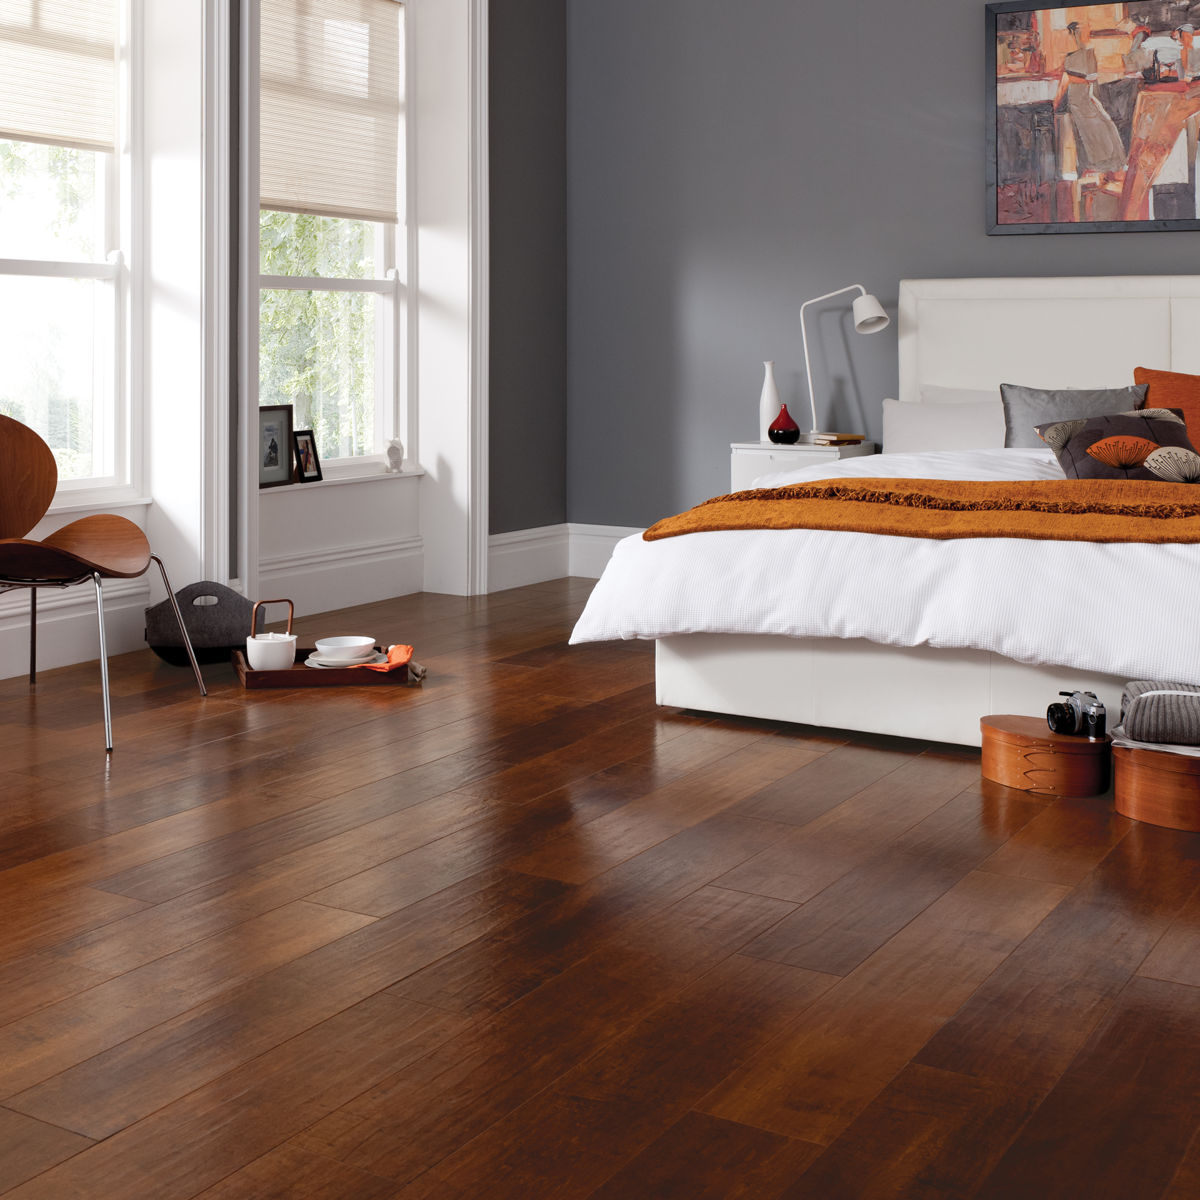 karndean art select santina cherry rl07 vinyl flooring. Black Bedroom Furniture Sets. Home Design Ideas